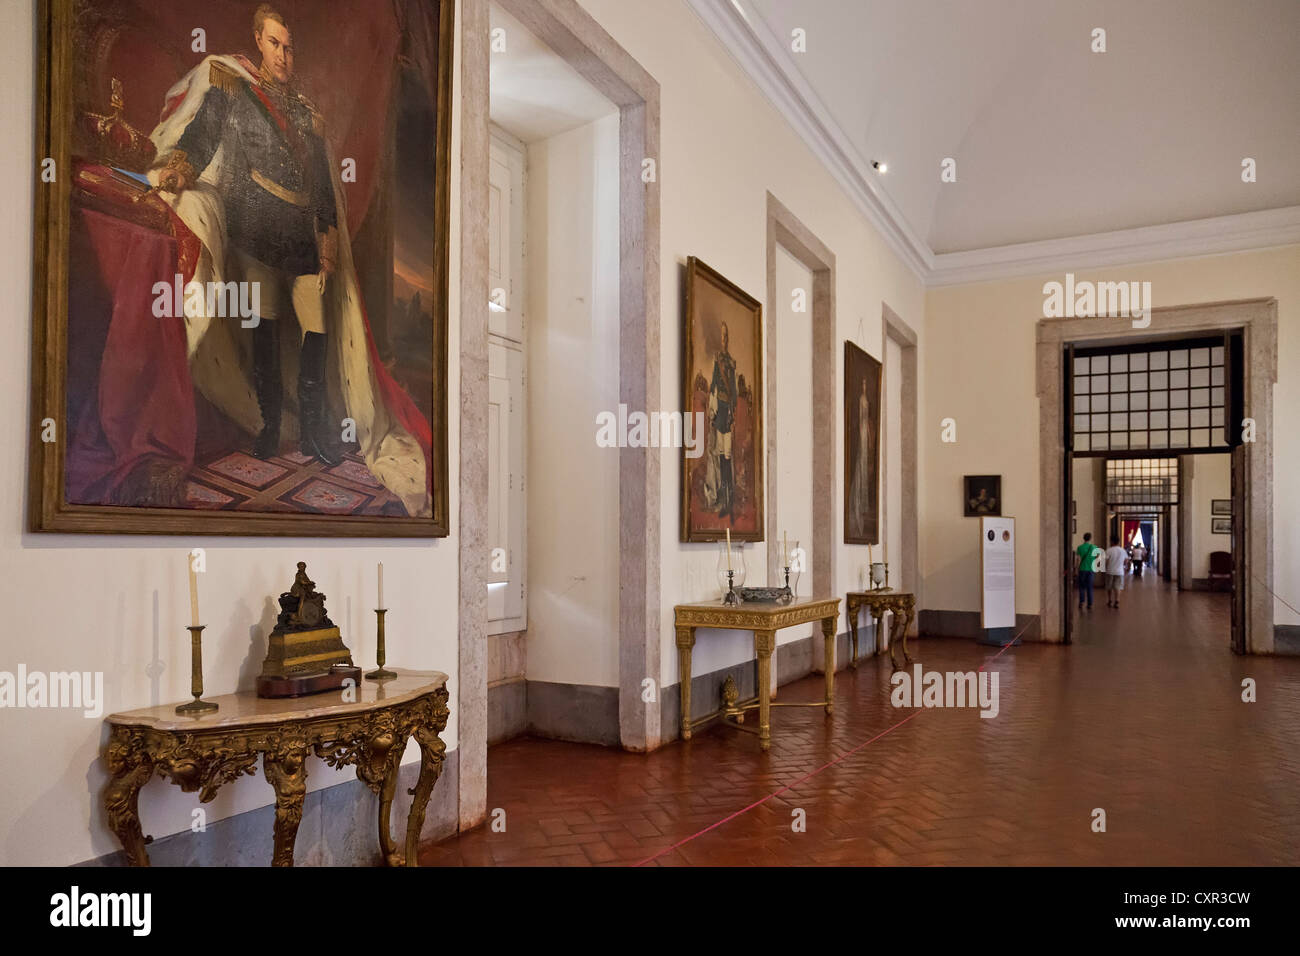 Kings Room. Mafra National Palace, Convent and Basilica in Portugal. Franciscan Religious Order. Baroque architecture. - Stock Image